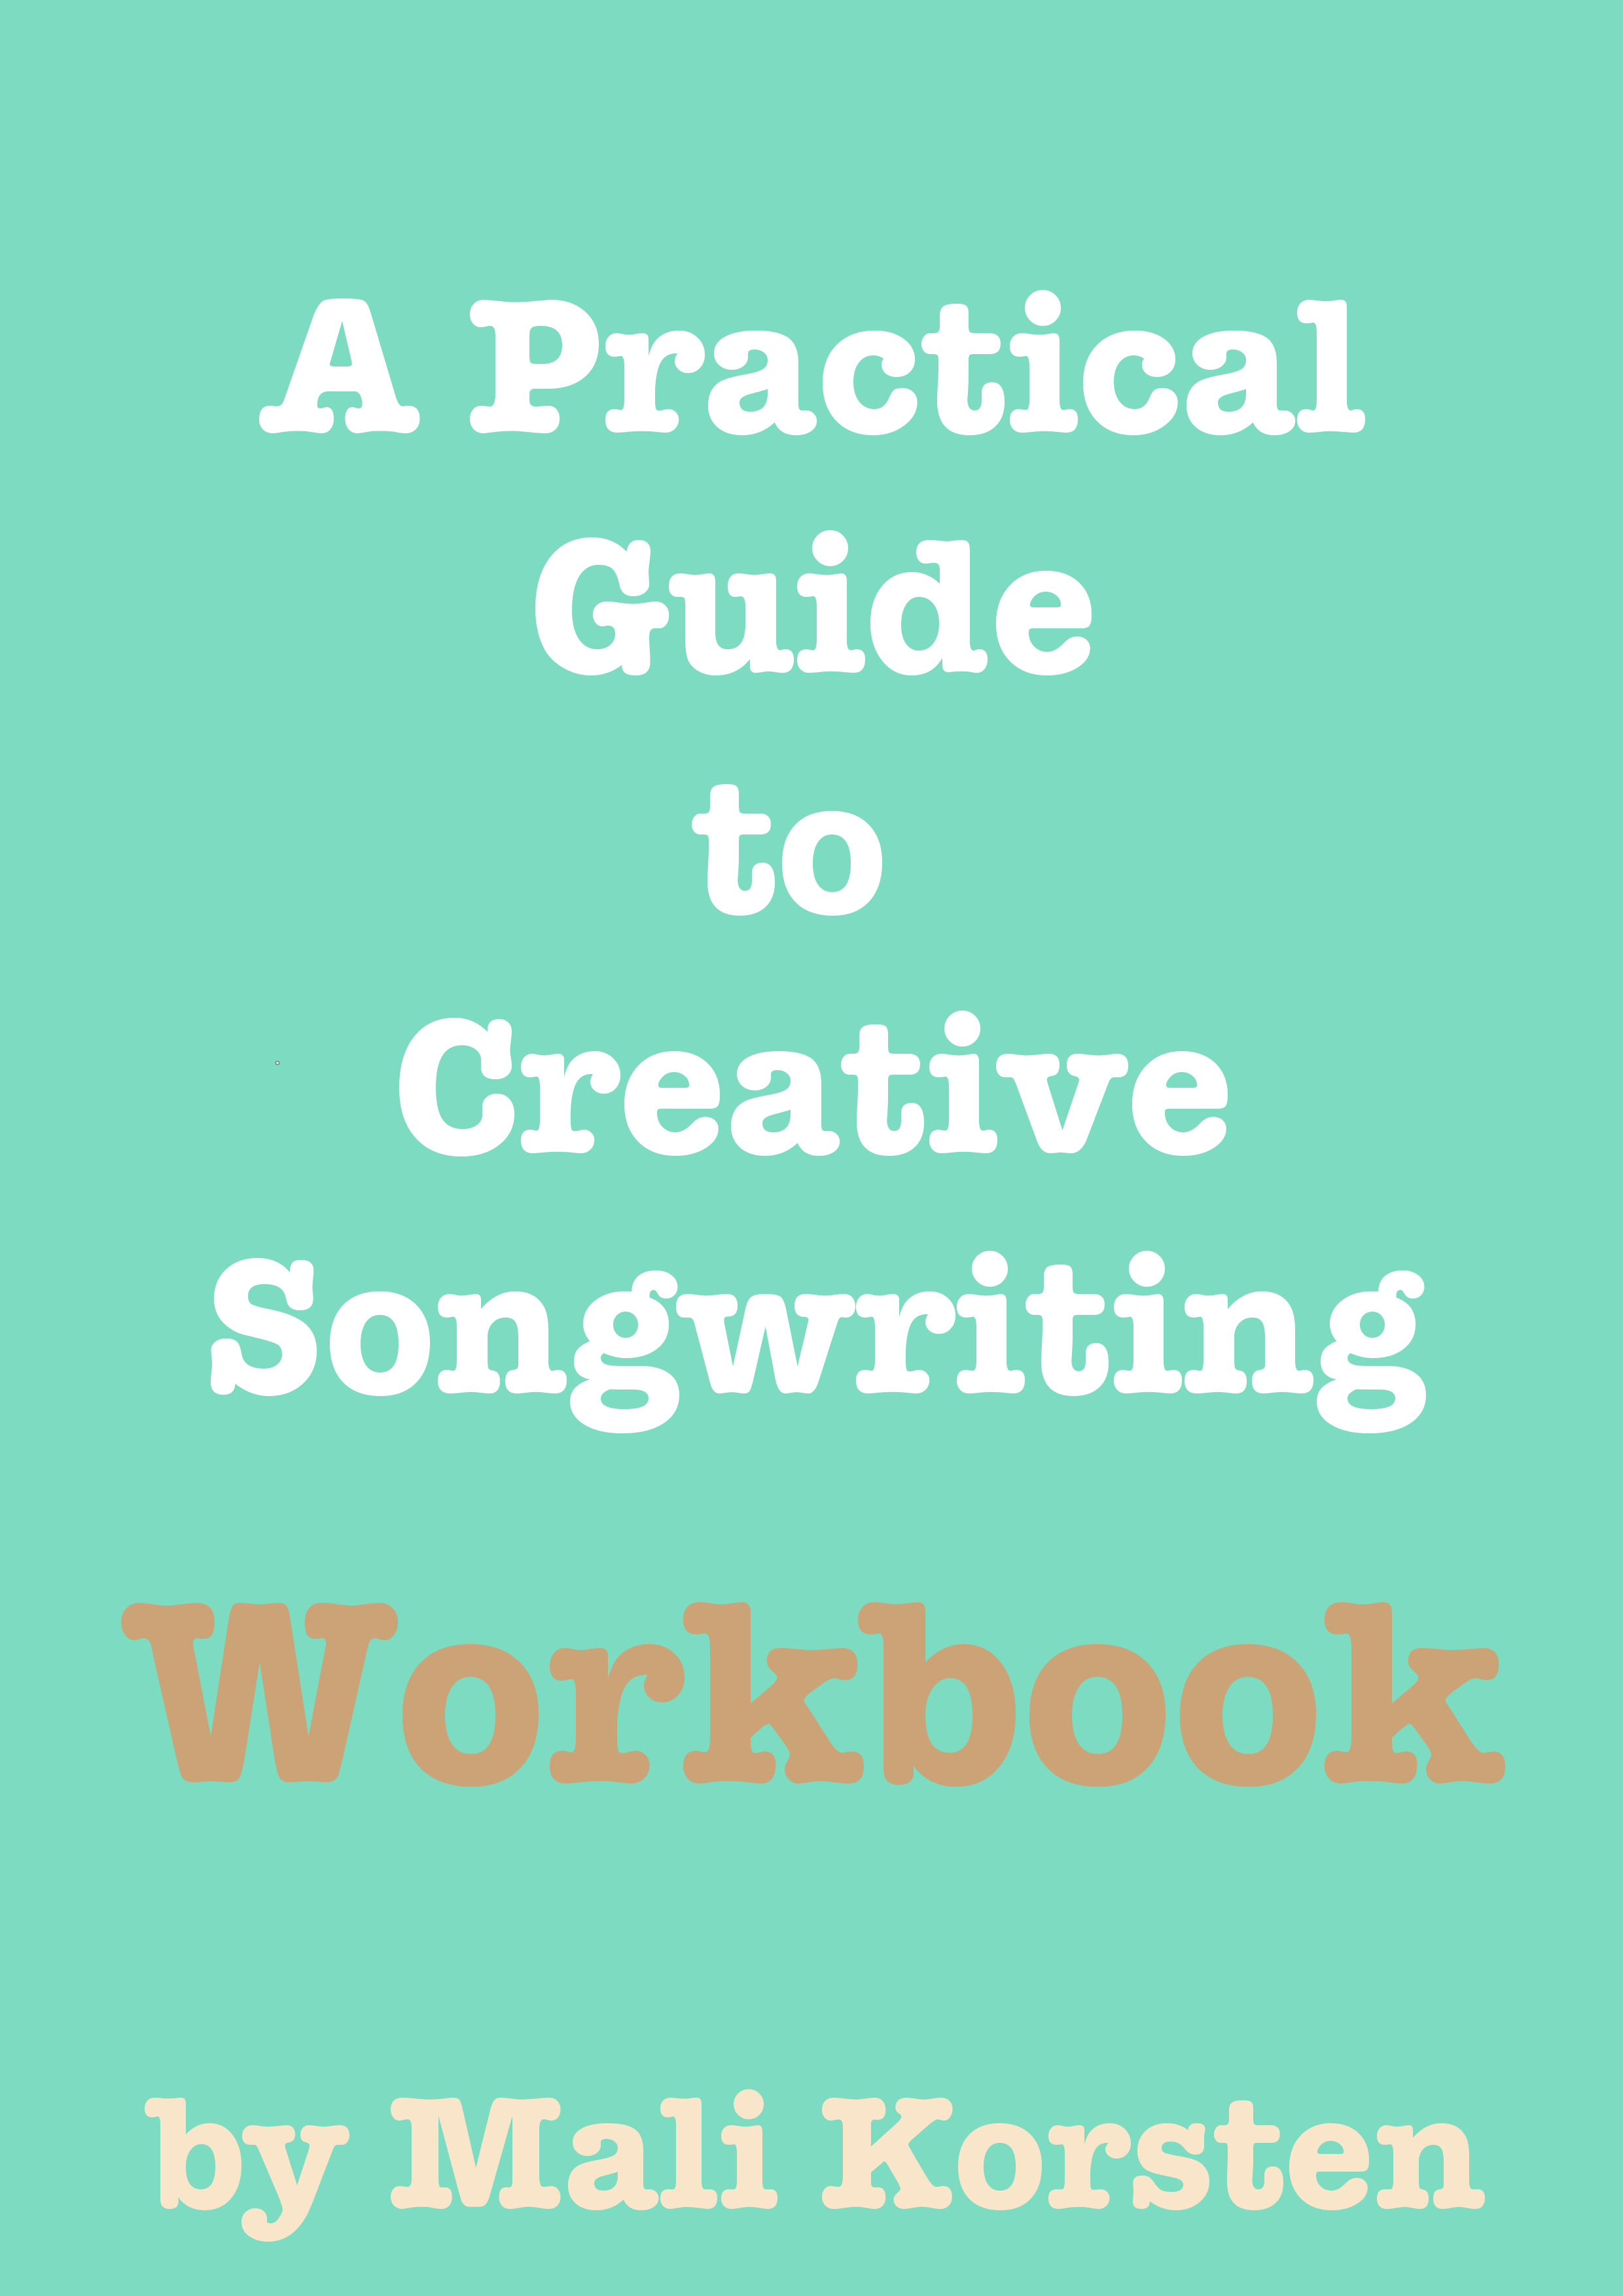 Creative songwriting tips